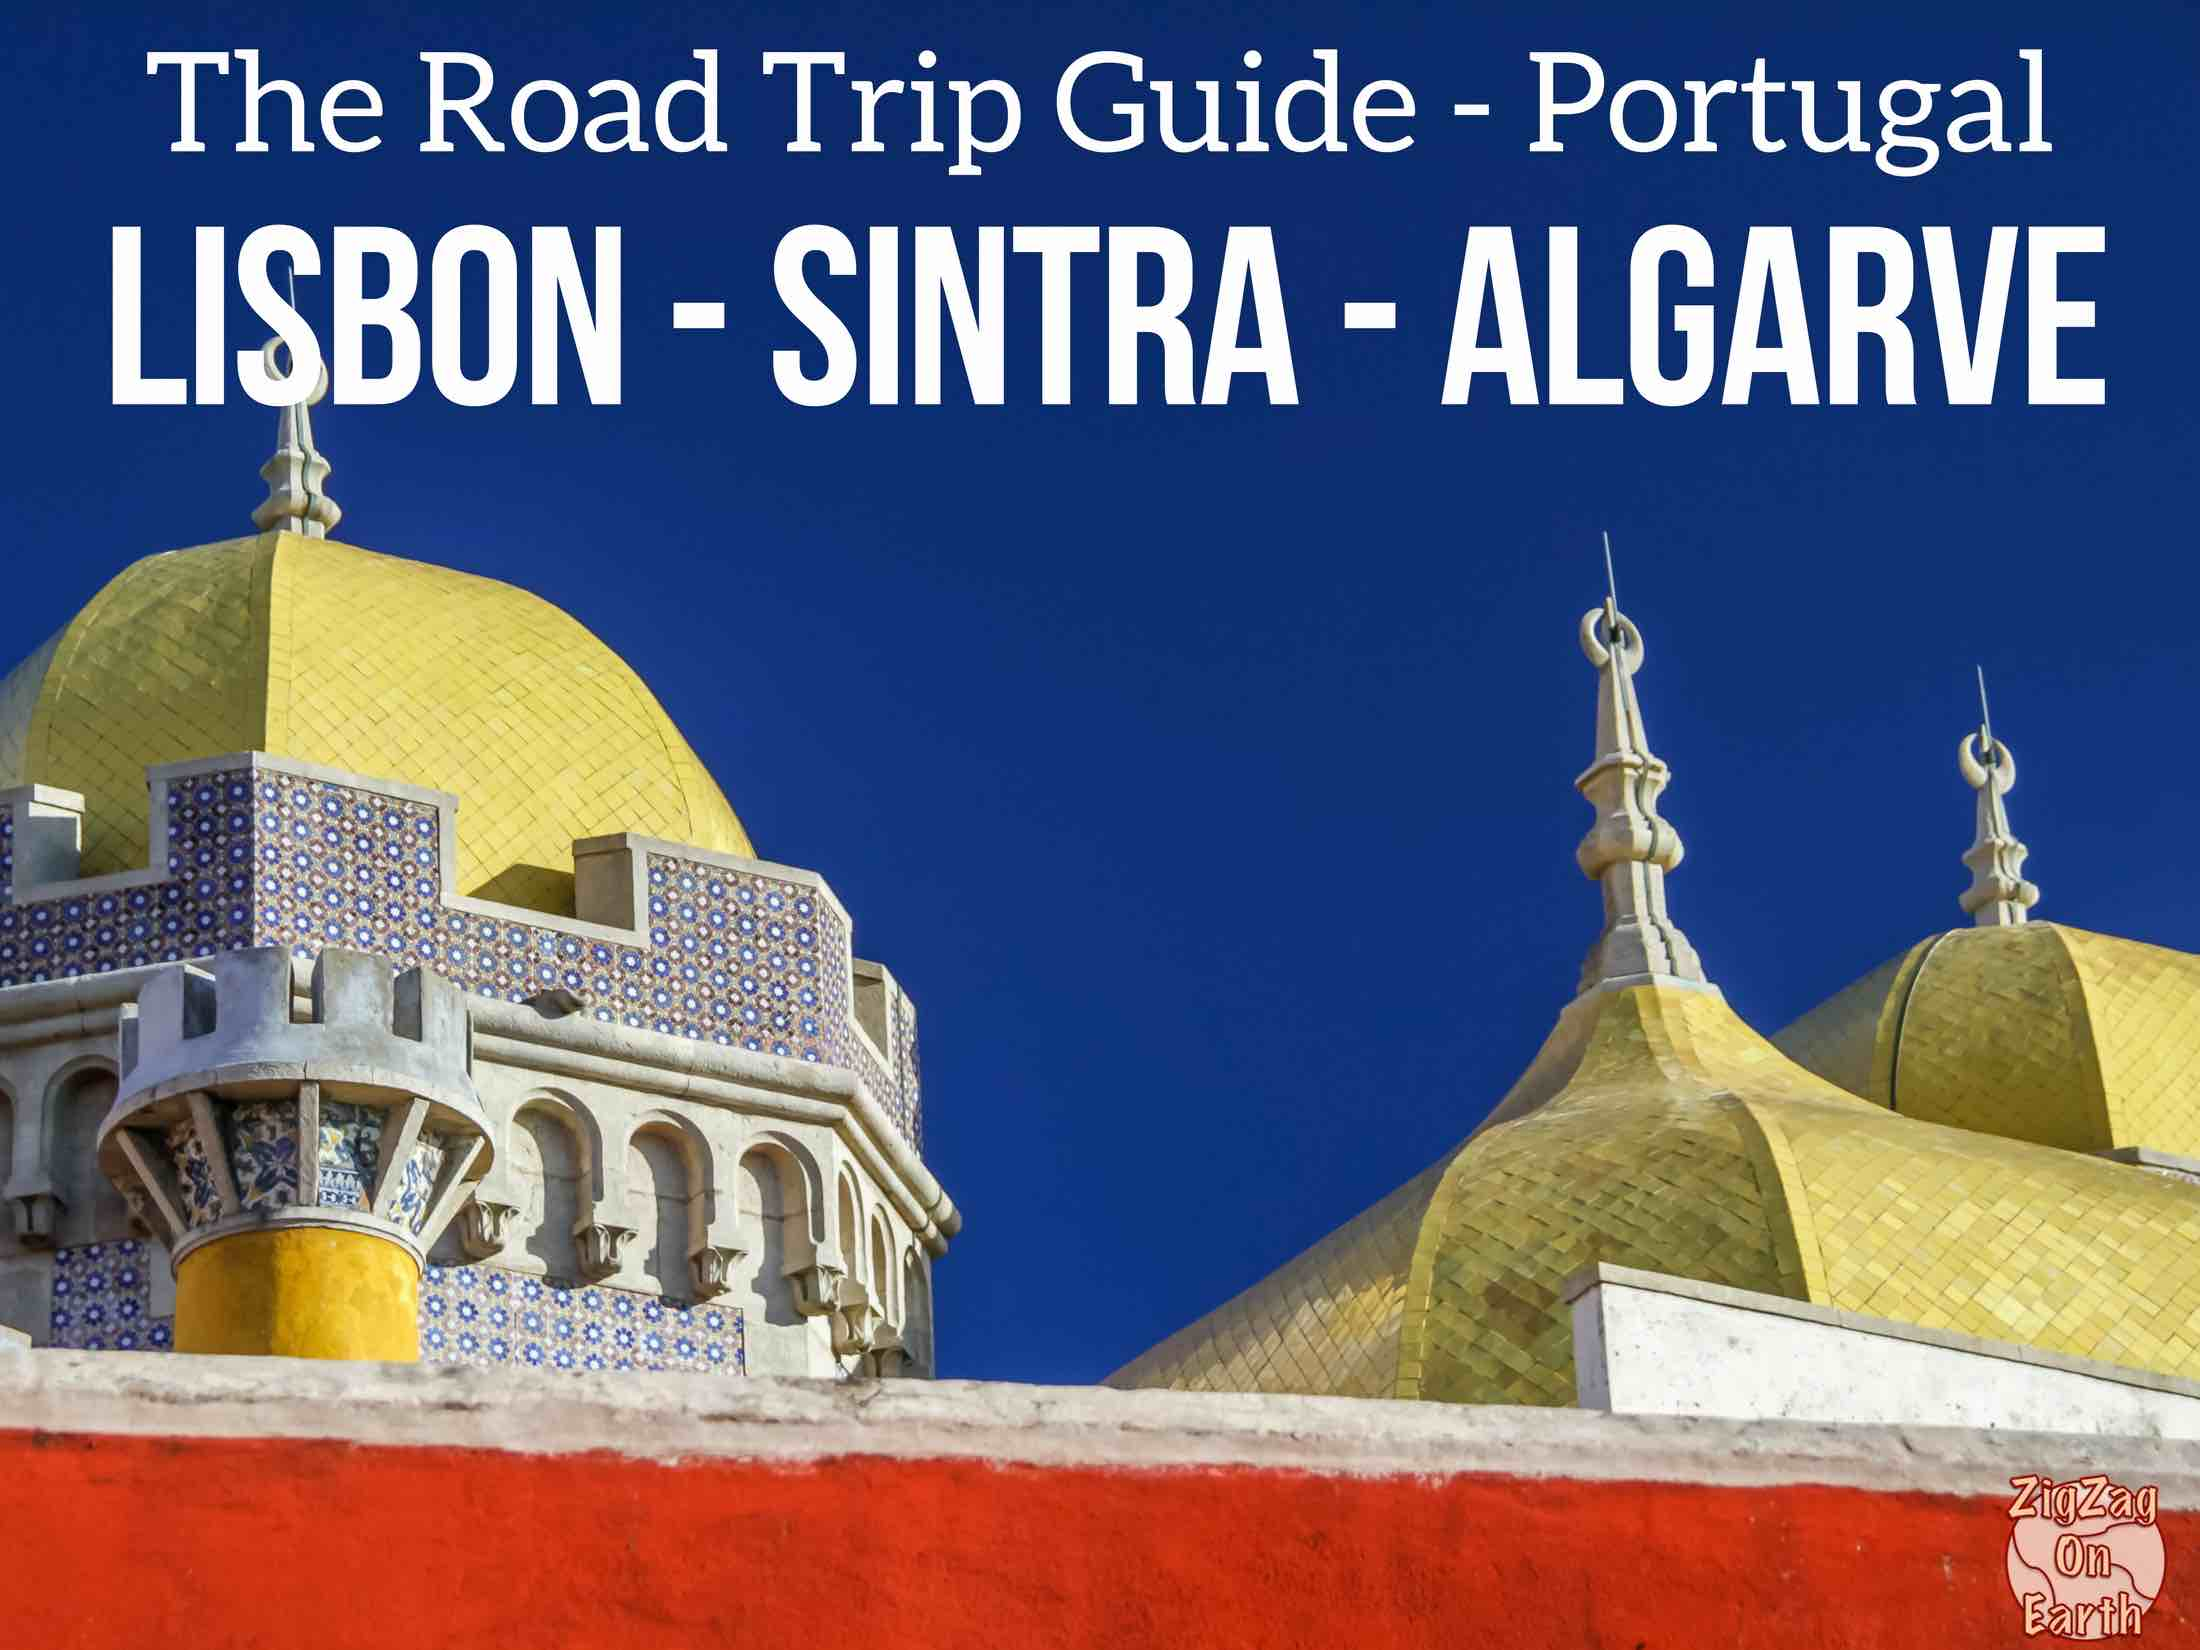 Small Lisbon Sintra Algarve ebook cover (3)